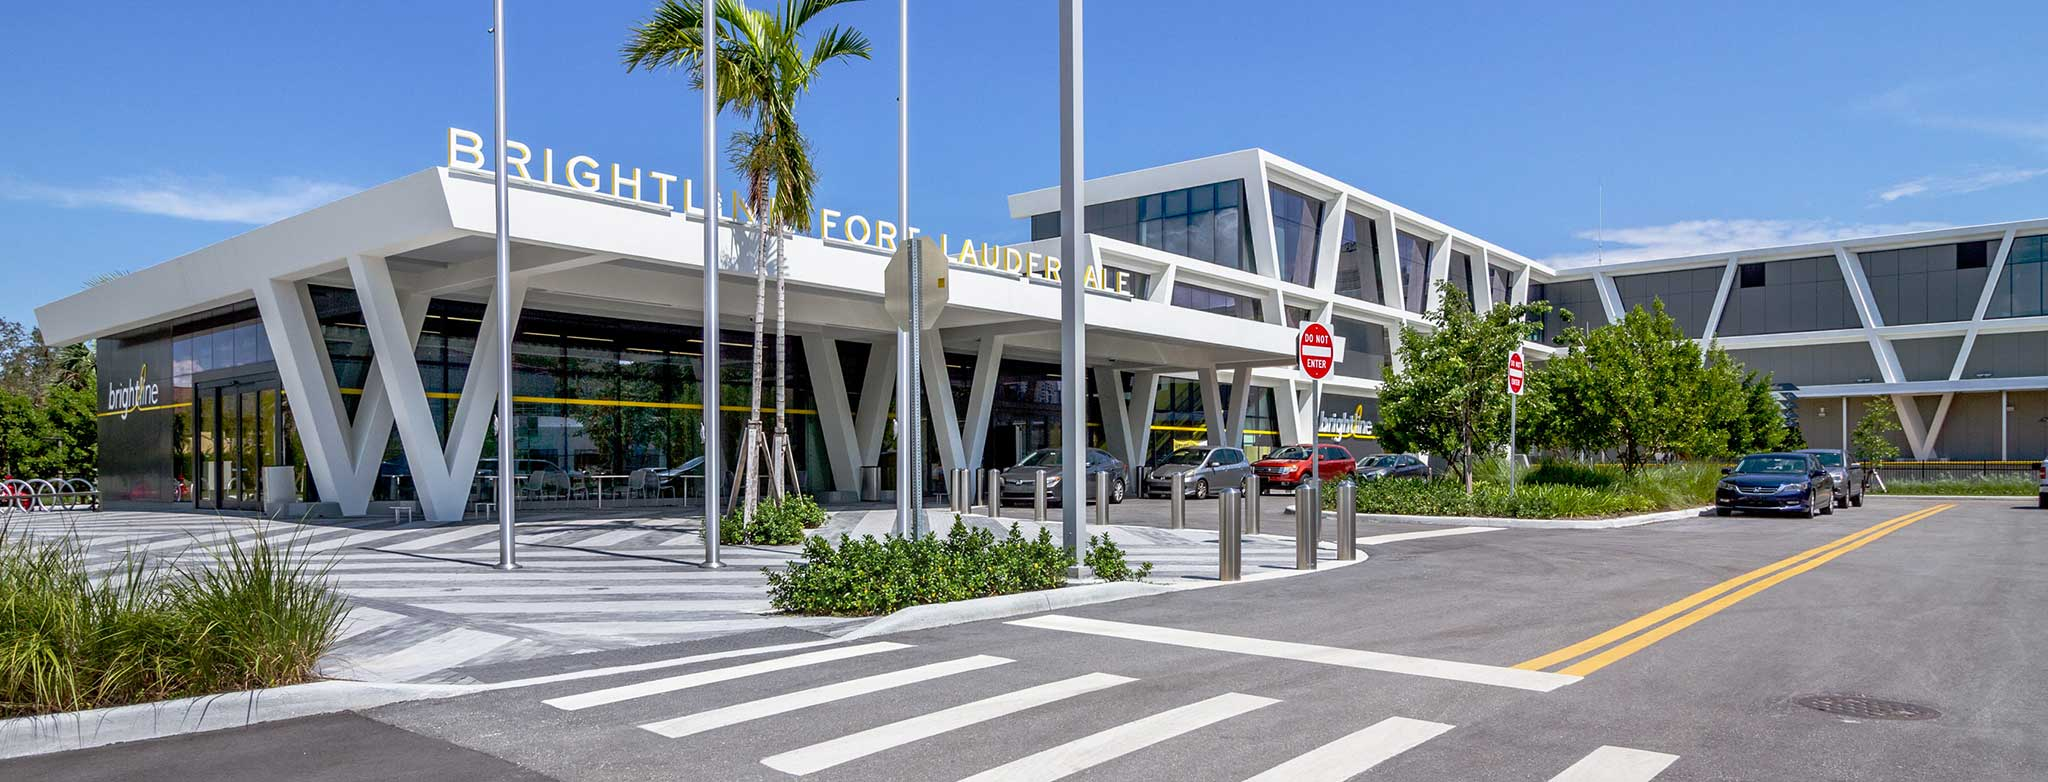 Brightline Station Fort Lauderdale